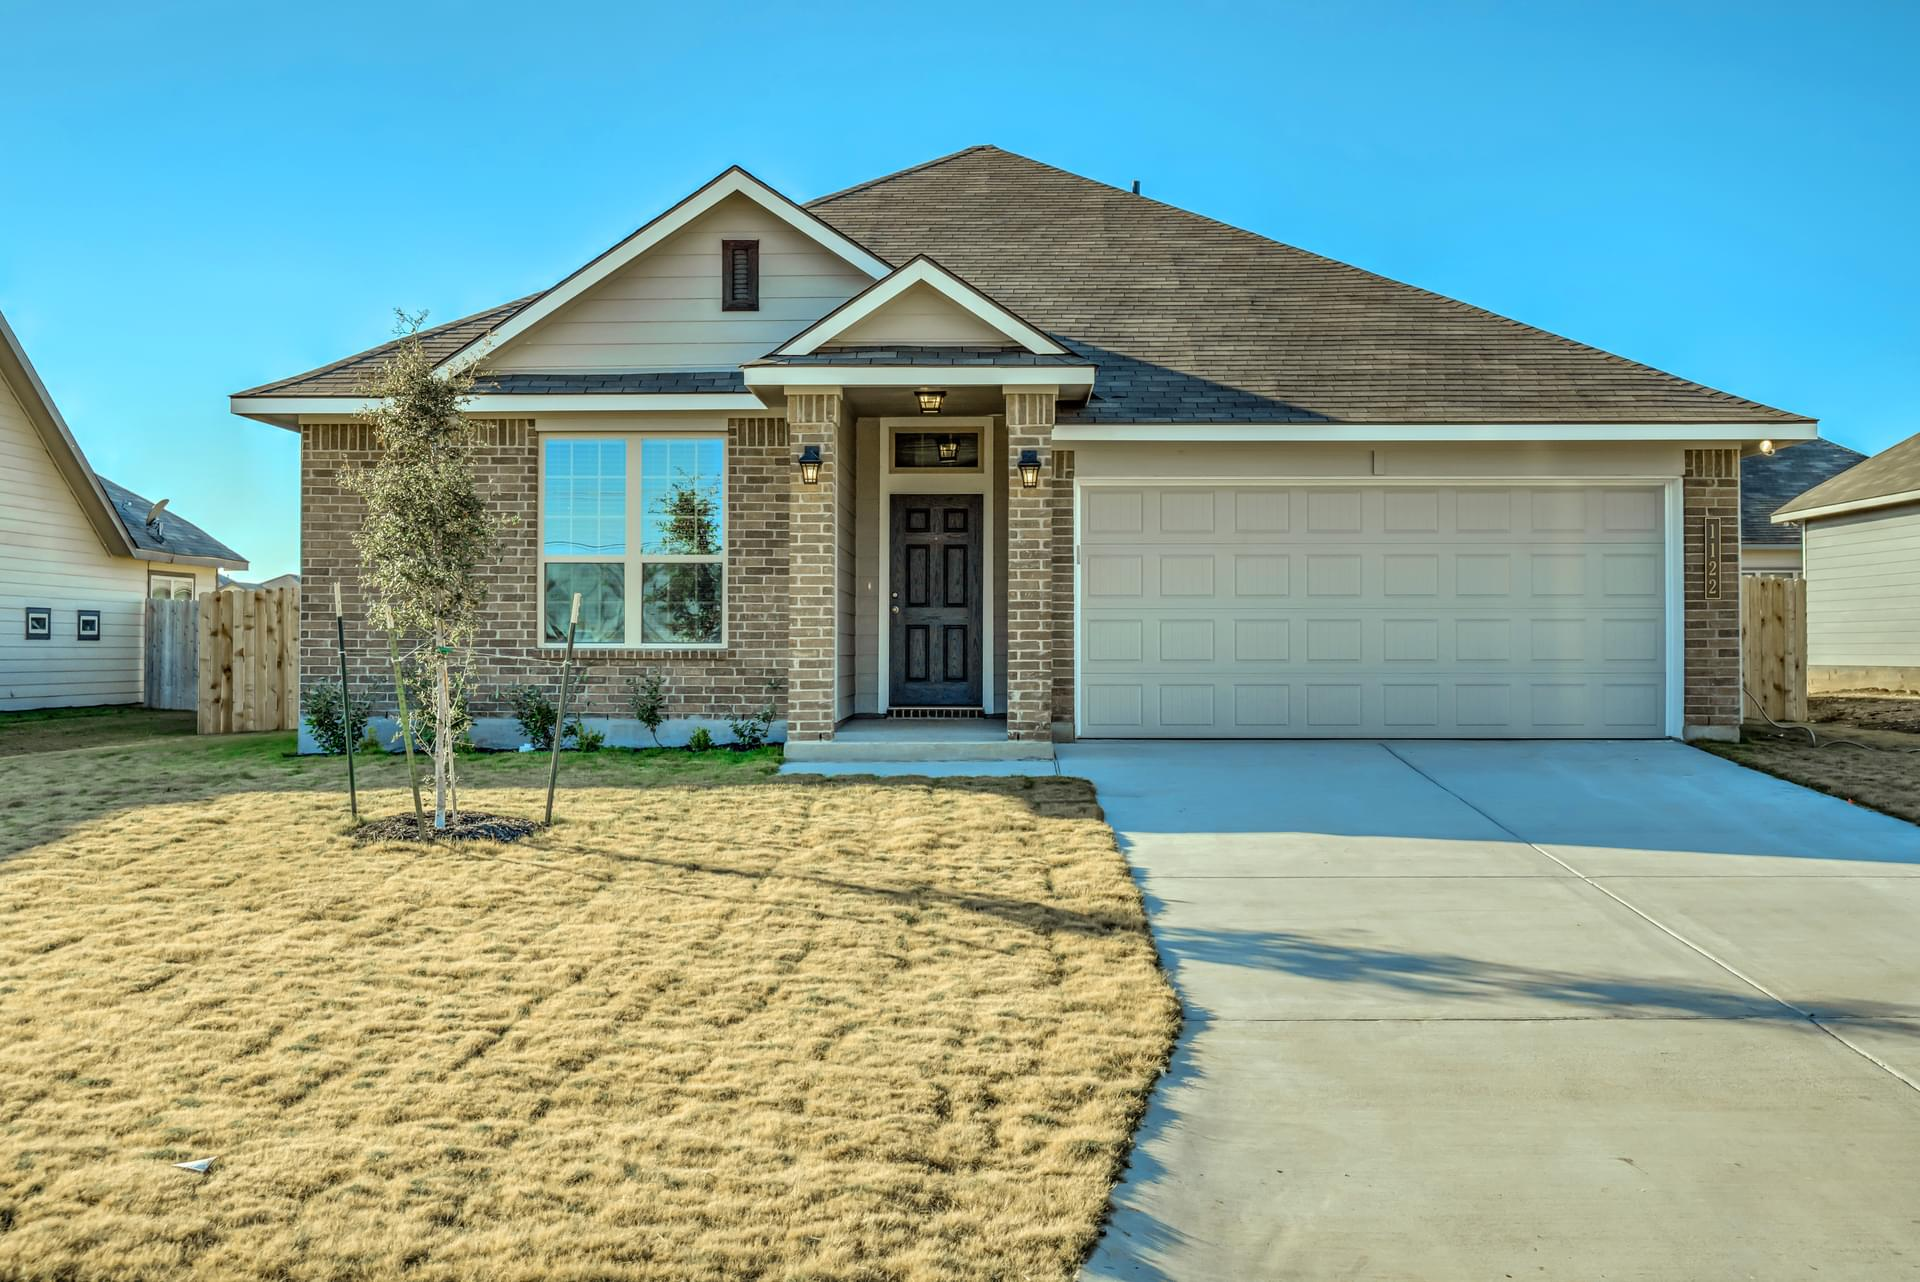 1122 Lilac Ledge Drive in Temple, TX